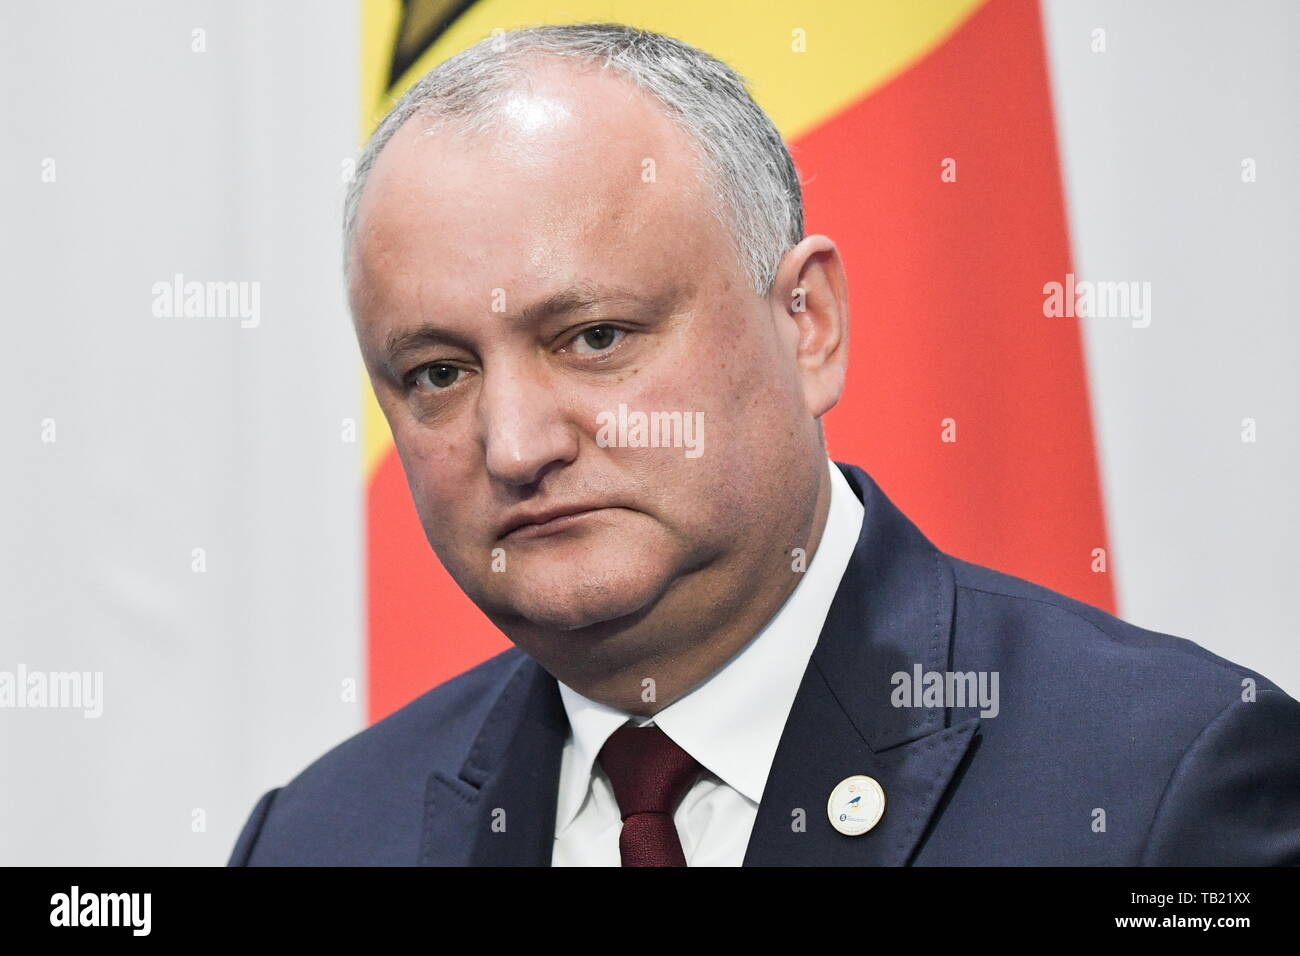 Nur Sultan, Kazakhstan. 29th May, 2019. NUR-SULTAN, KAZAKHSTAN - MAY 29, 2019: Moldova's President Igor Dodon meets with Russia's President Vladimir Putin (not in picture) following an extended meeting of the Supreme Eurasian Economic Council, at the Palace of Independence. Alexei Nikolsky/Russian Presidential Press and Information Office/TASS Credit: ITAR-TASS News Agency/Alamy Live News - Stock Image